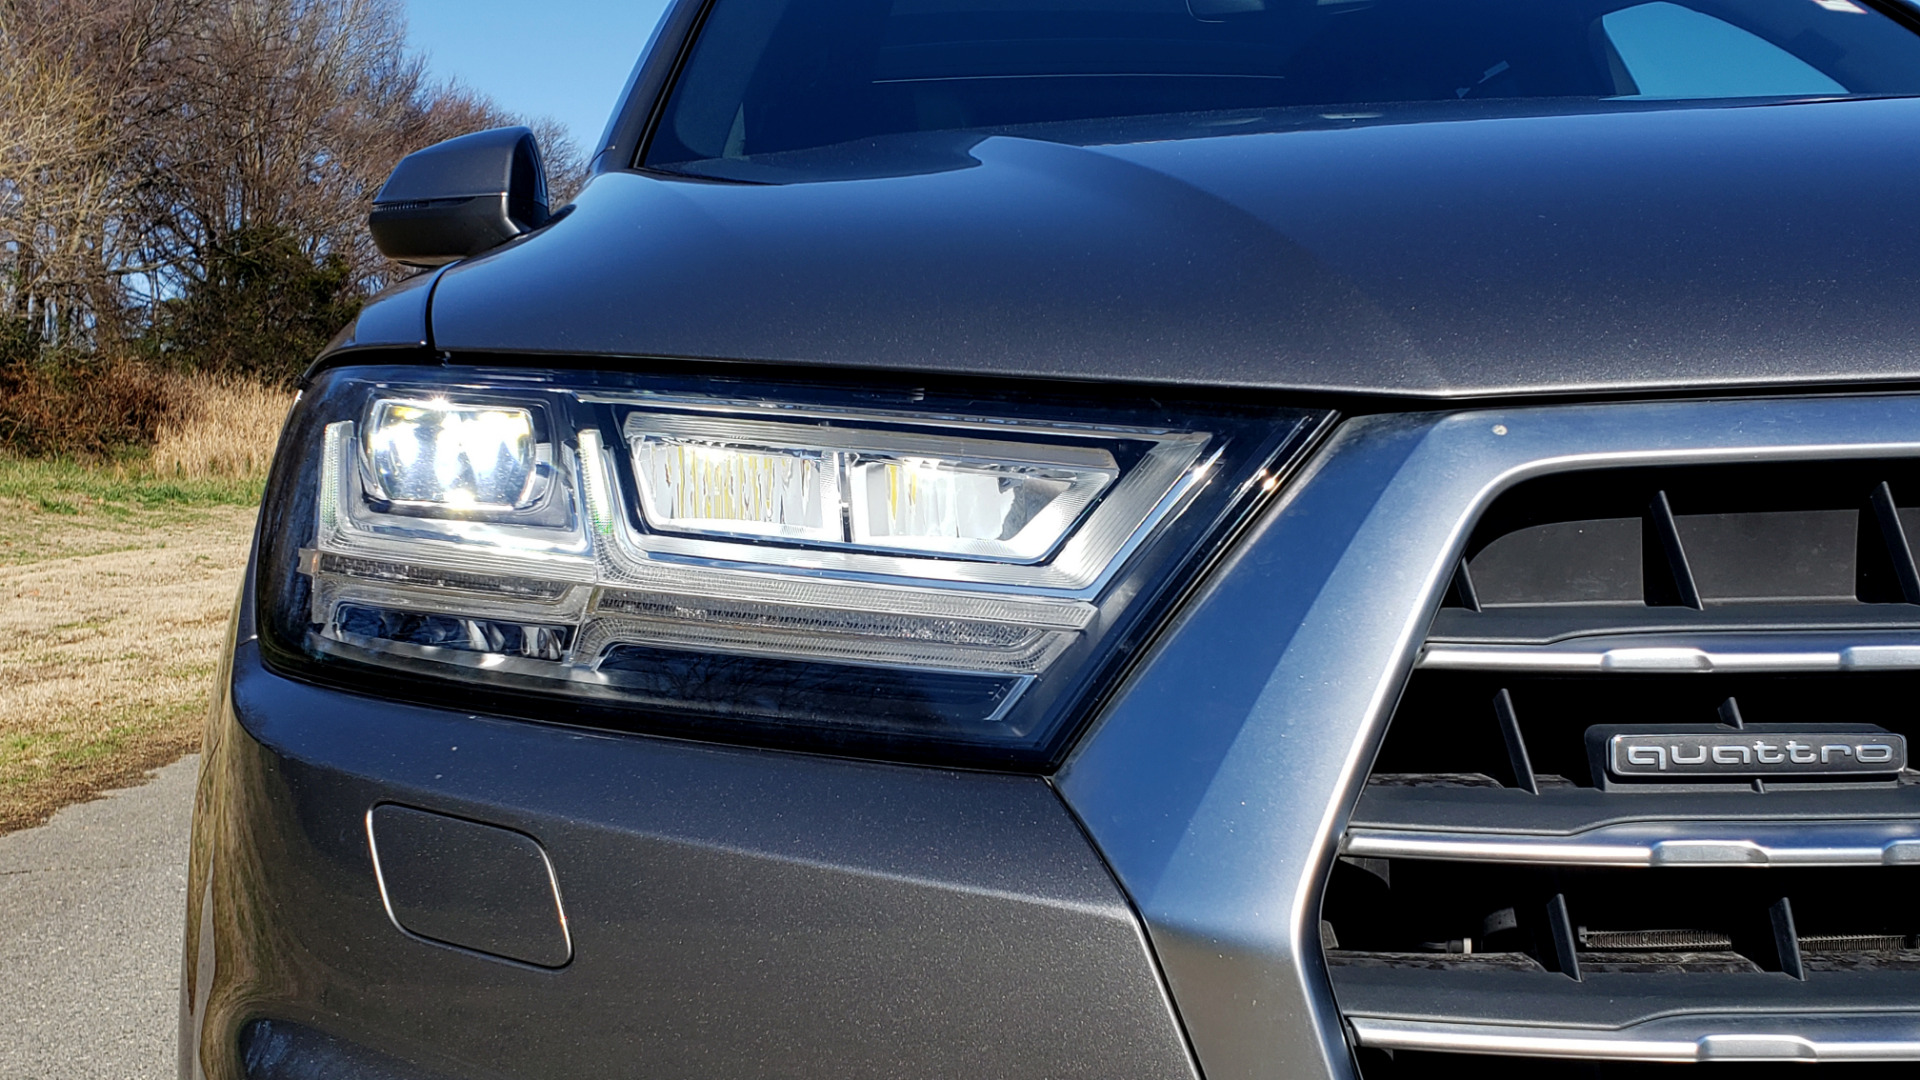 Used 2017 Audi Q7 PREMIUM PLUS / 2.0T TIPTRONIC / NAV / PANO-ROOF / 3-ROW / REARVIEW for sale $33,999 at Formula Imports in Charlotte NC 28227 11